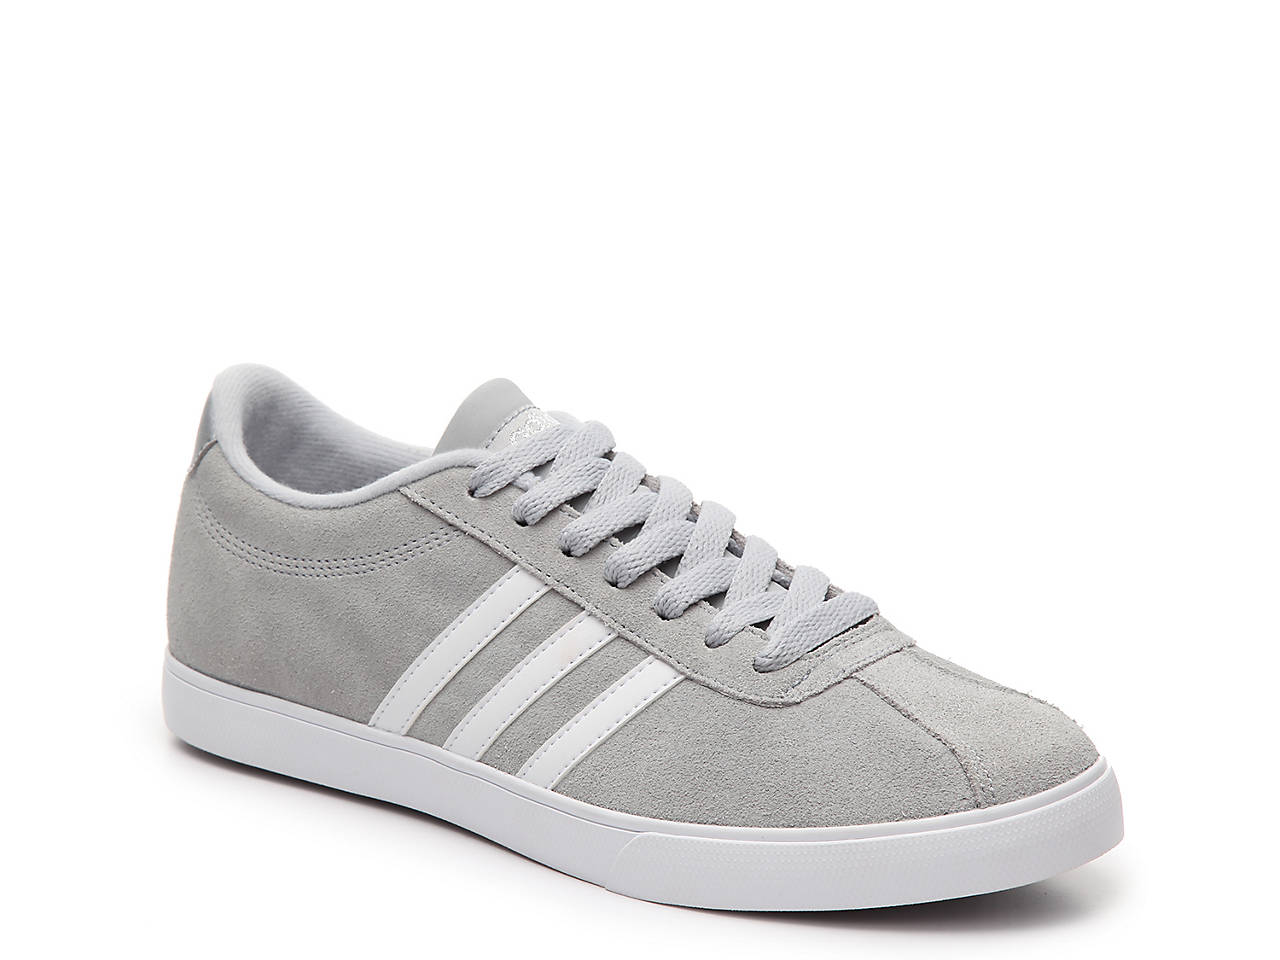 finest selection 3ea8e 139ee adidas Courtset Sneaker - Womens Womens Shoes  DSW